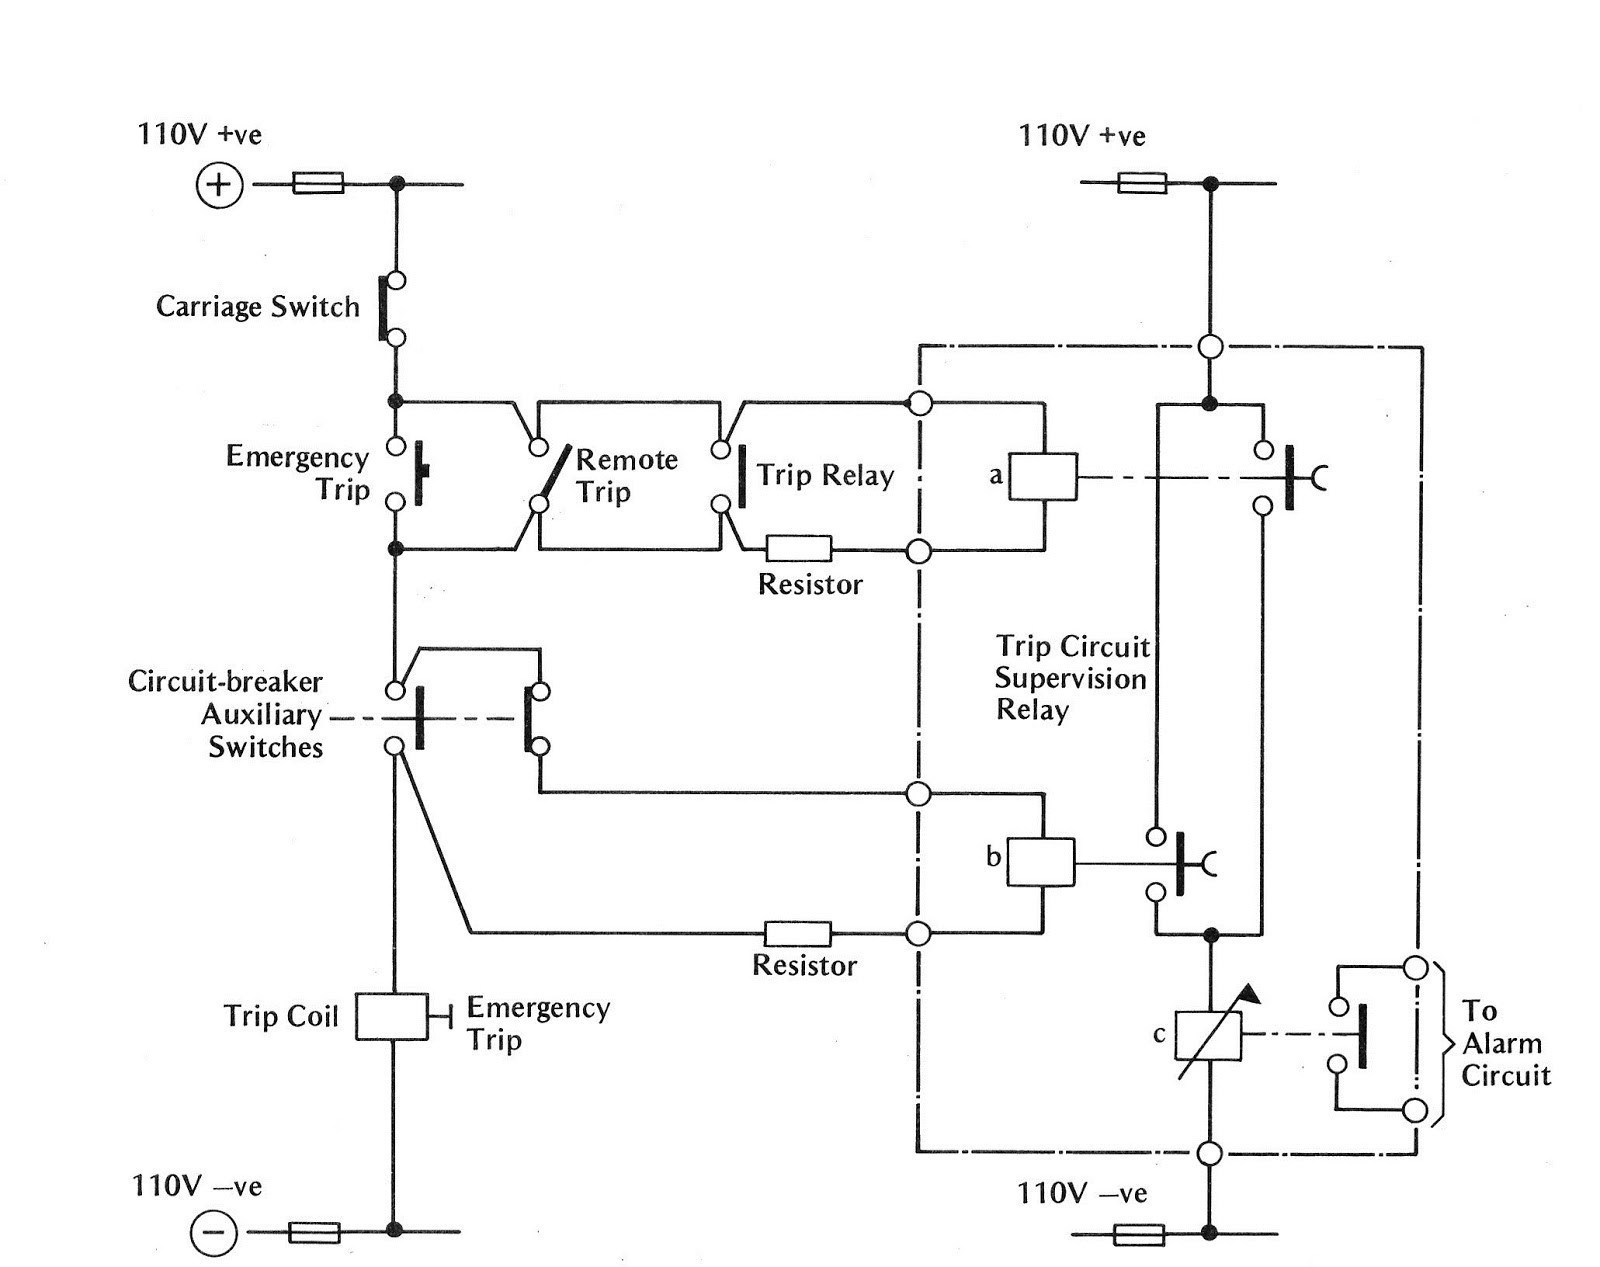 Allen Bradley Switch Wiring Diagram | Wiring Diagram - Allen Bradley Safety Relay Wiring Diagram